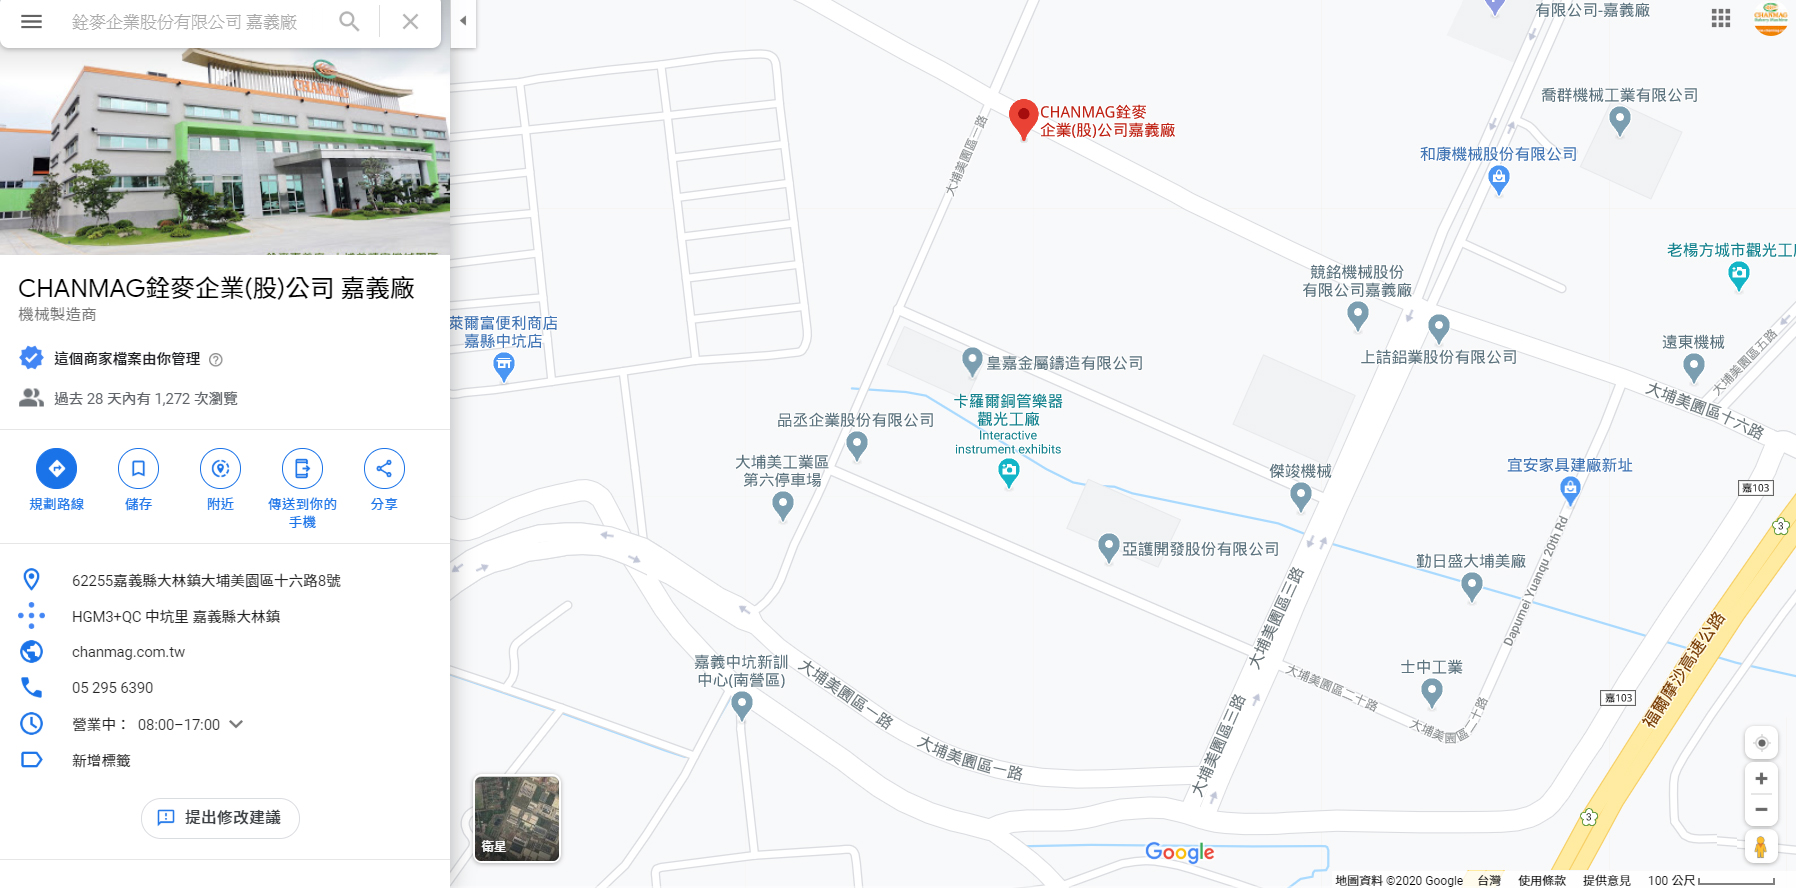 Google Map search 銓麥嘉義廠